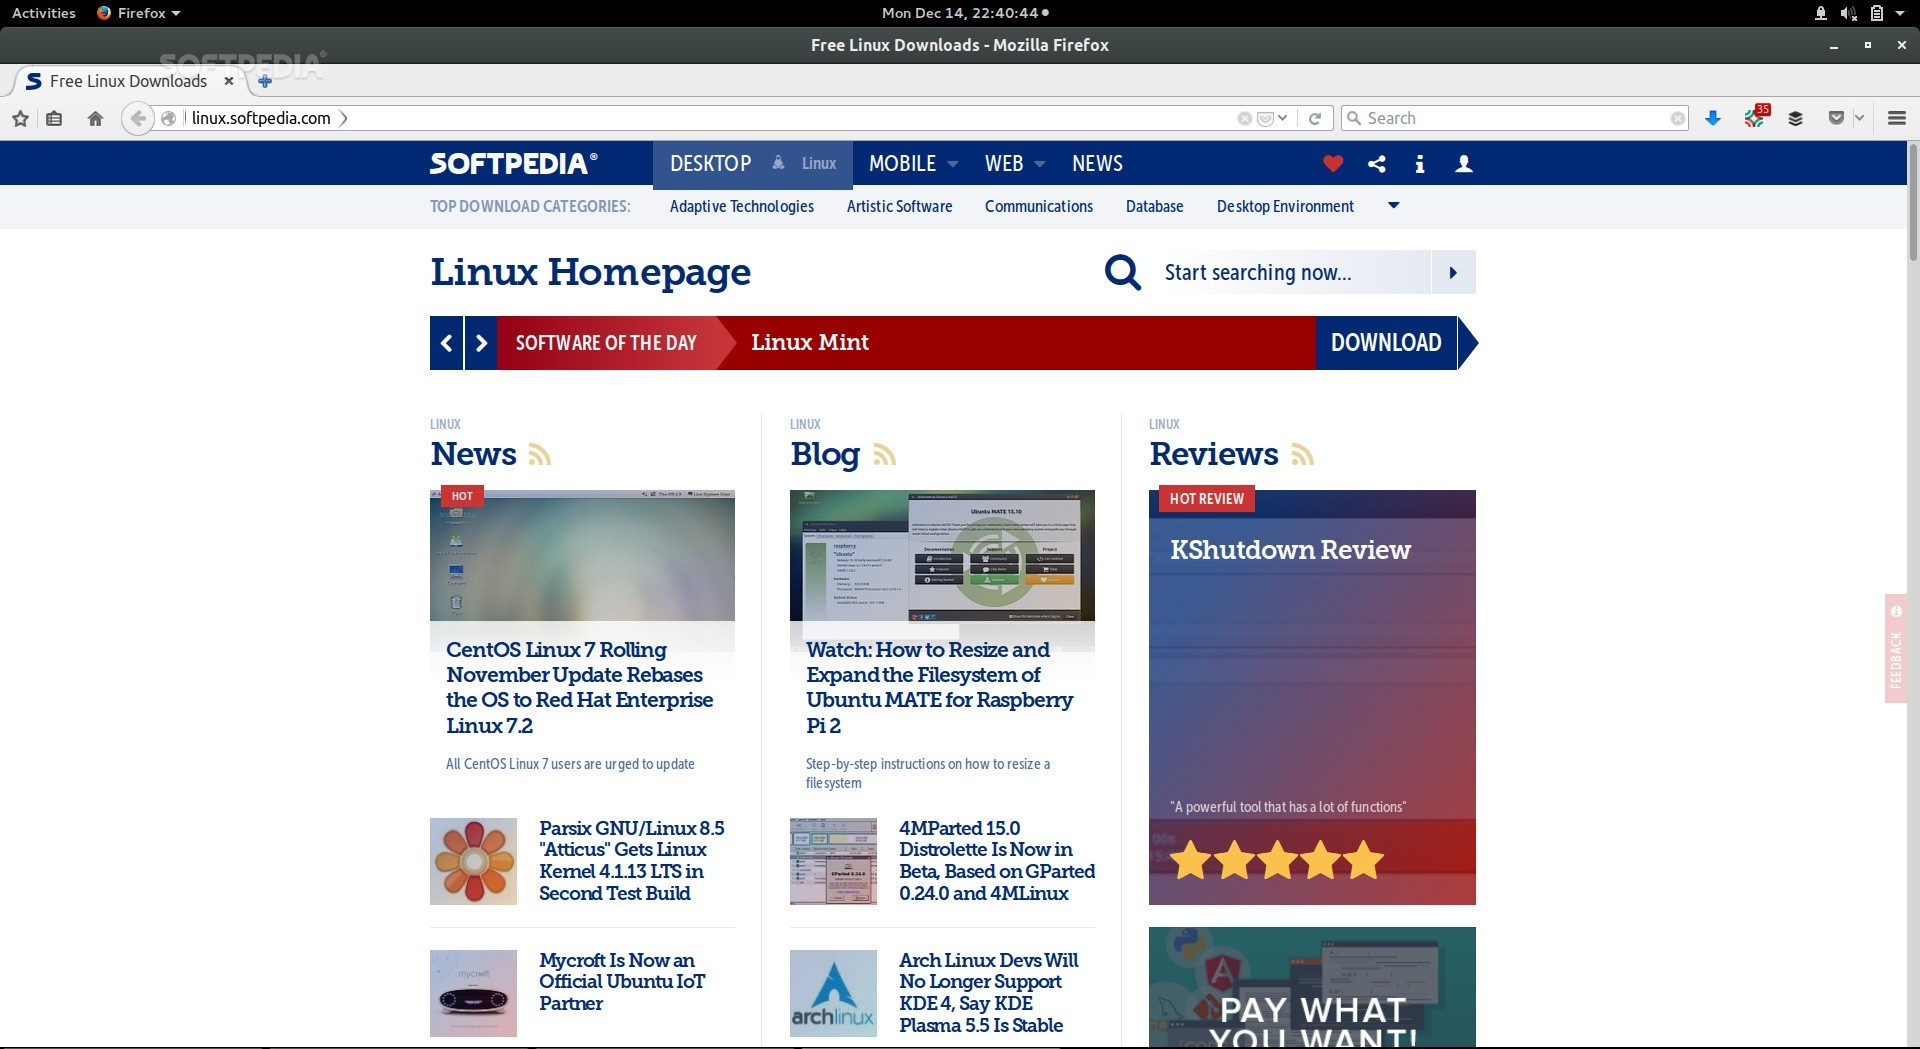 Mozilla Firefox 43 0 Officially Released for GNU/Linux Without GTK3